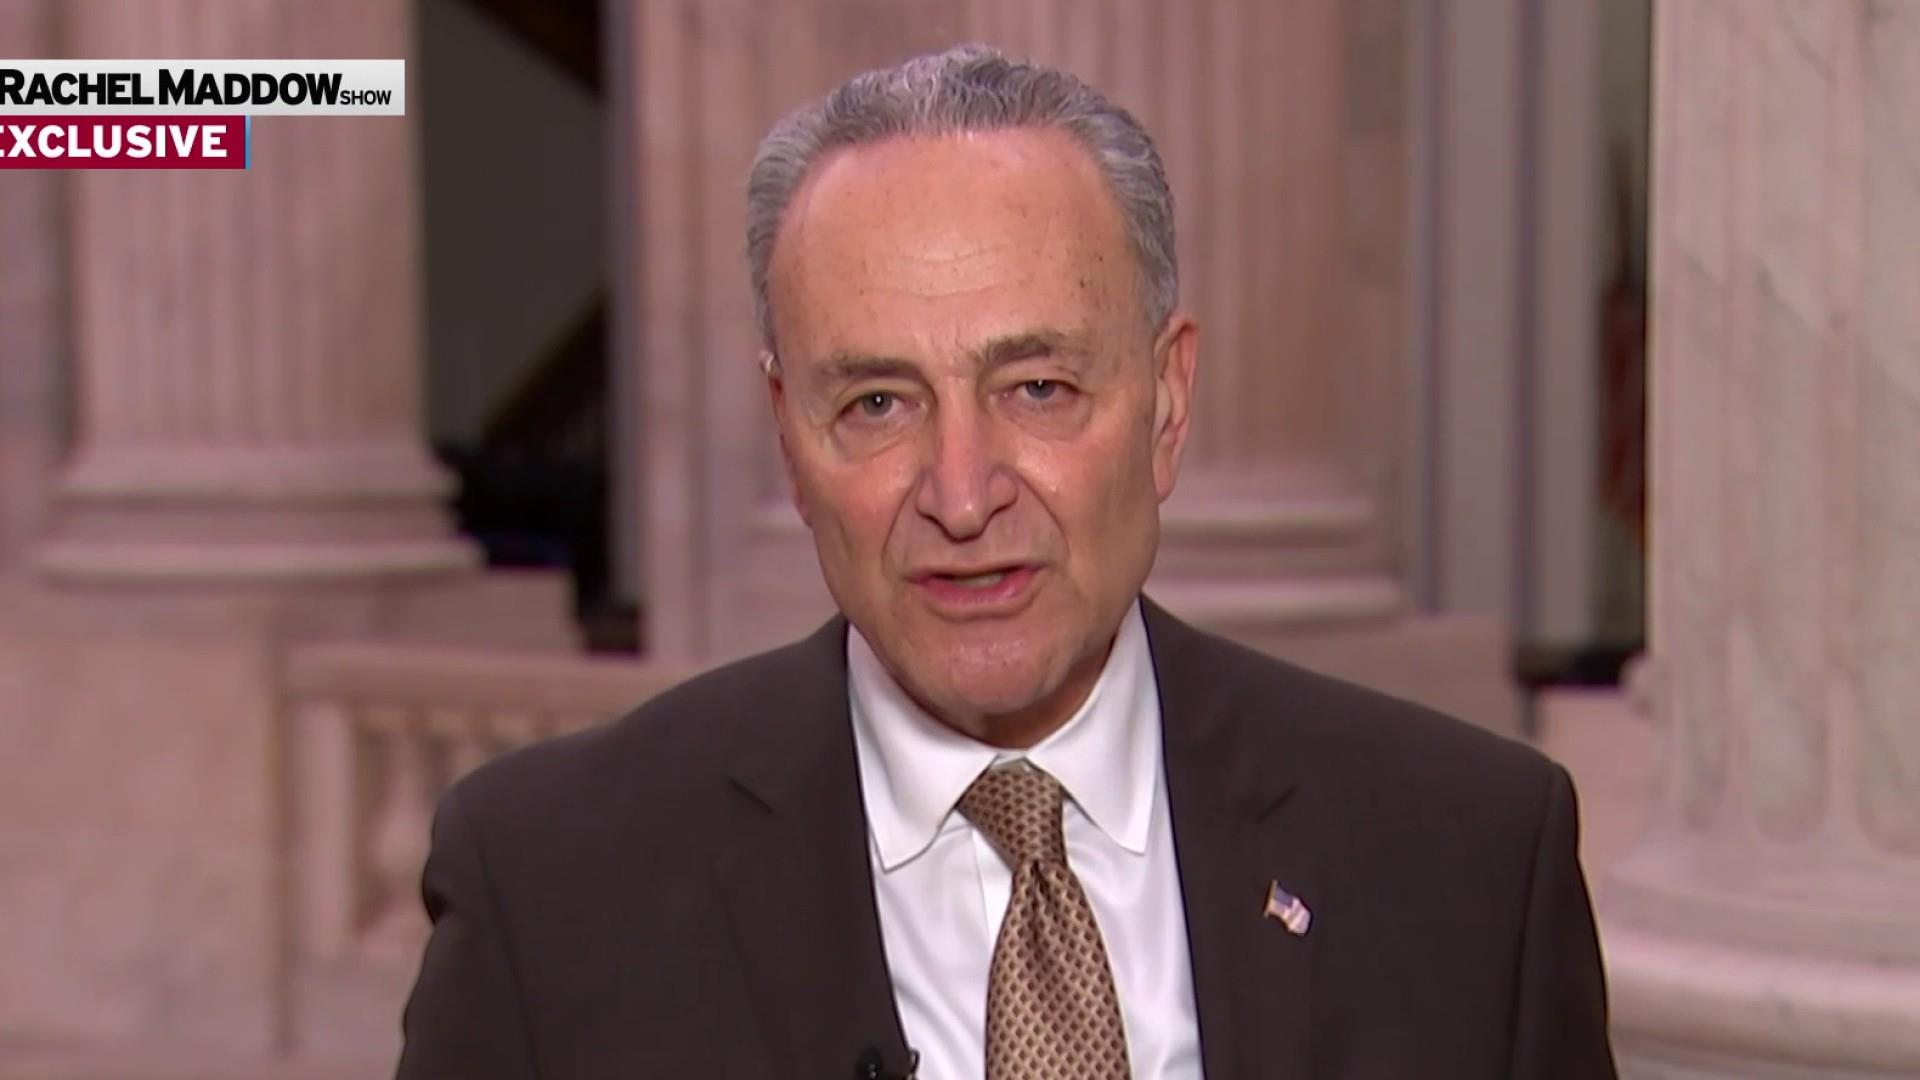 Schumer: Barr fudged his answers on respecting Mueller probe